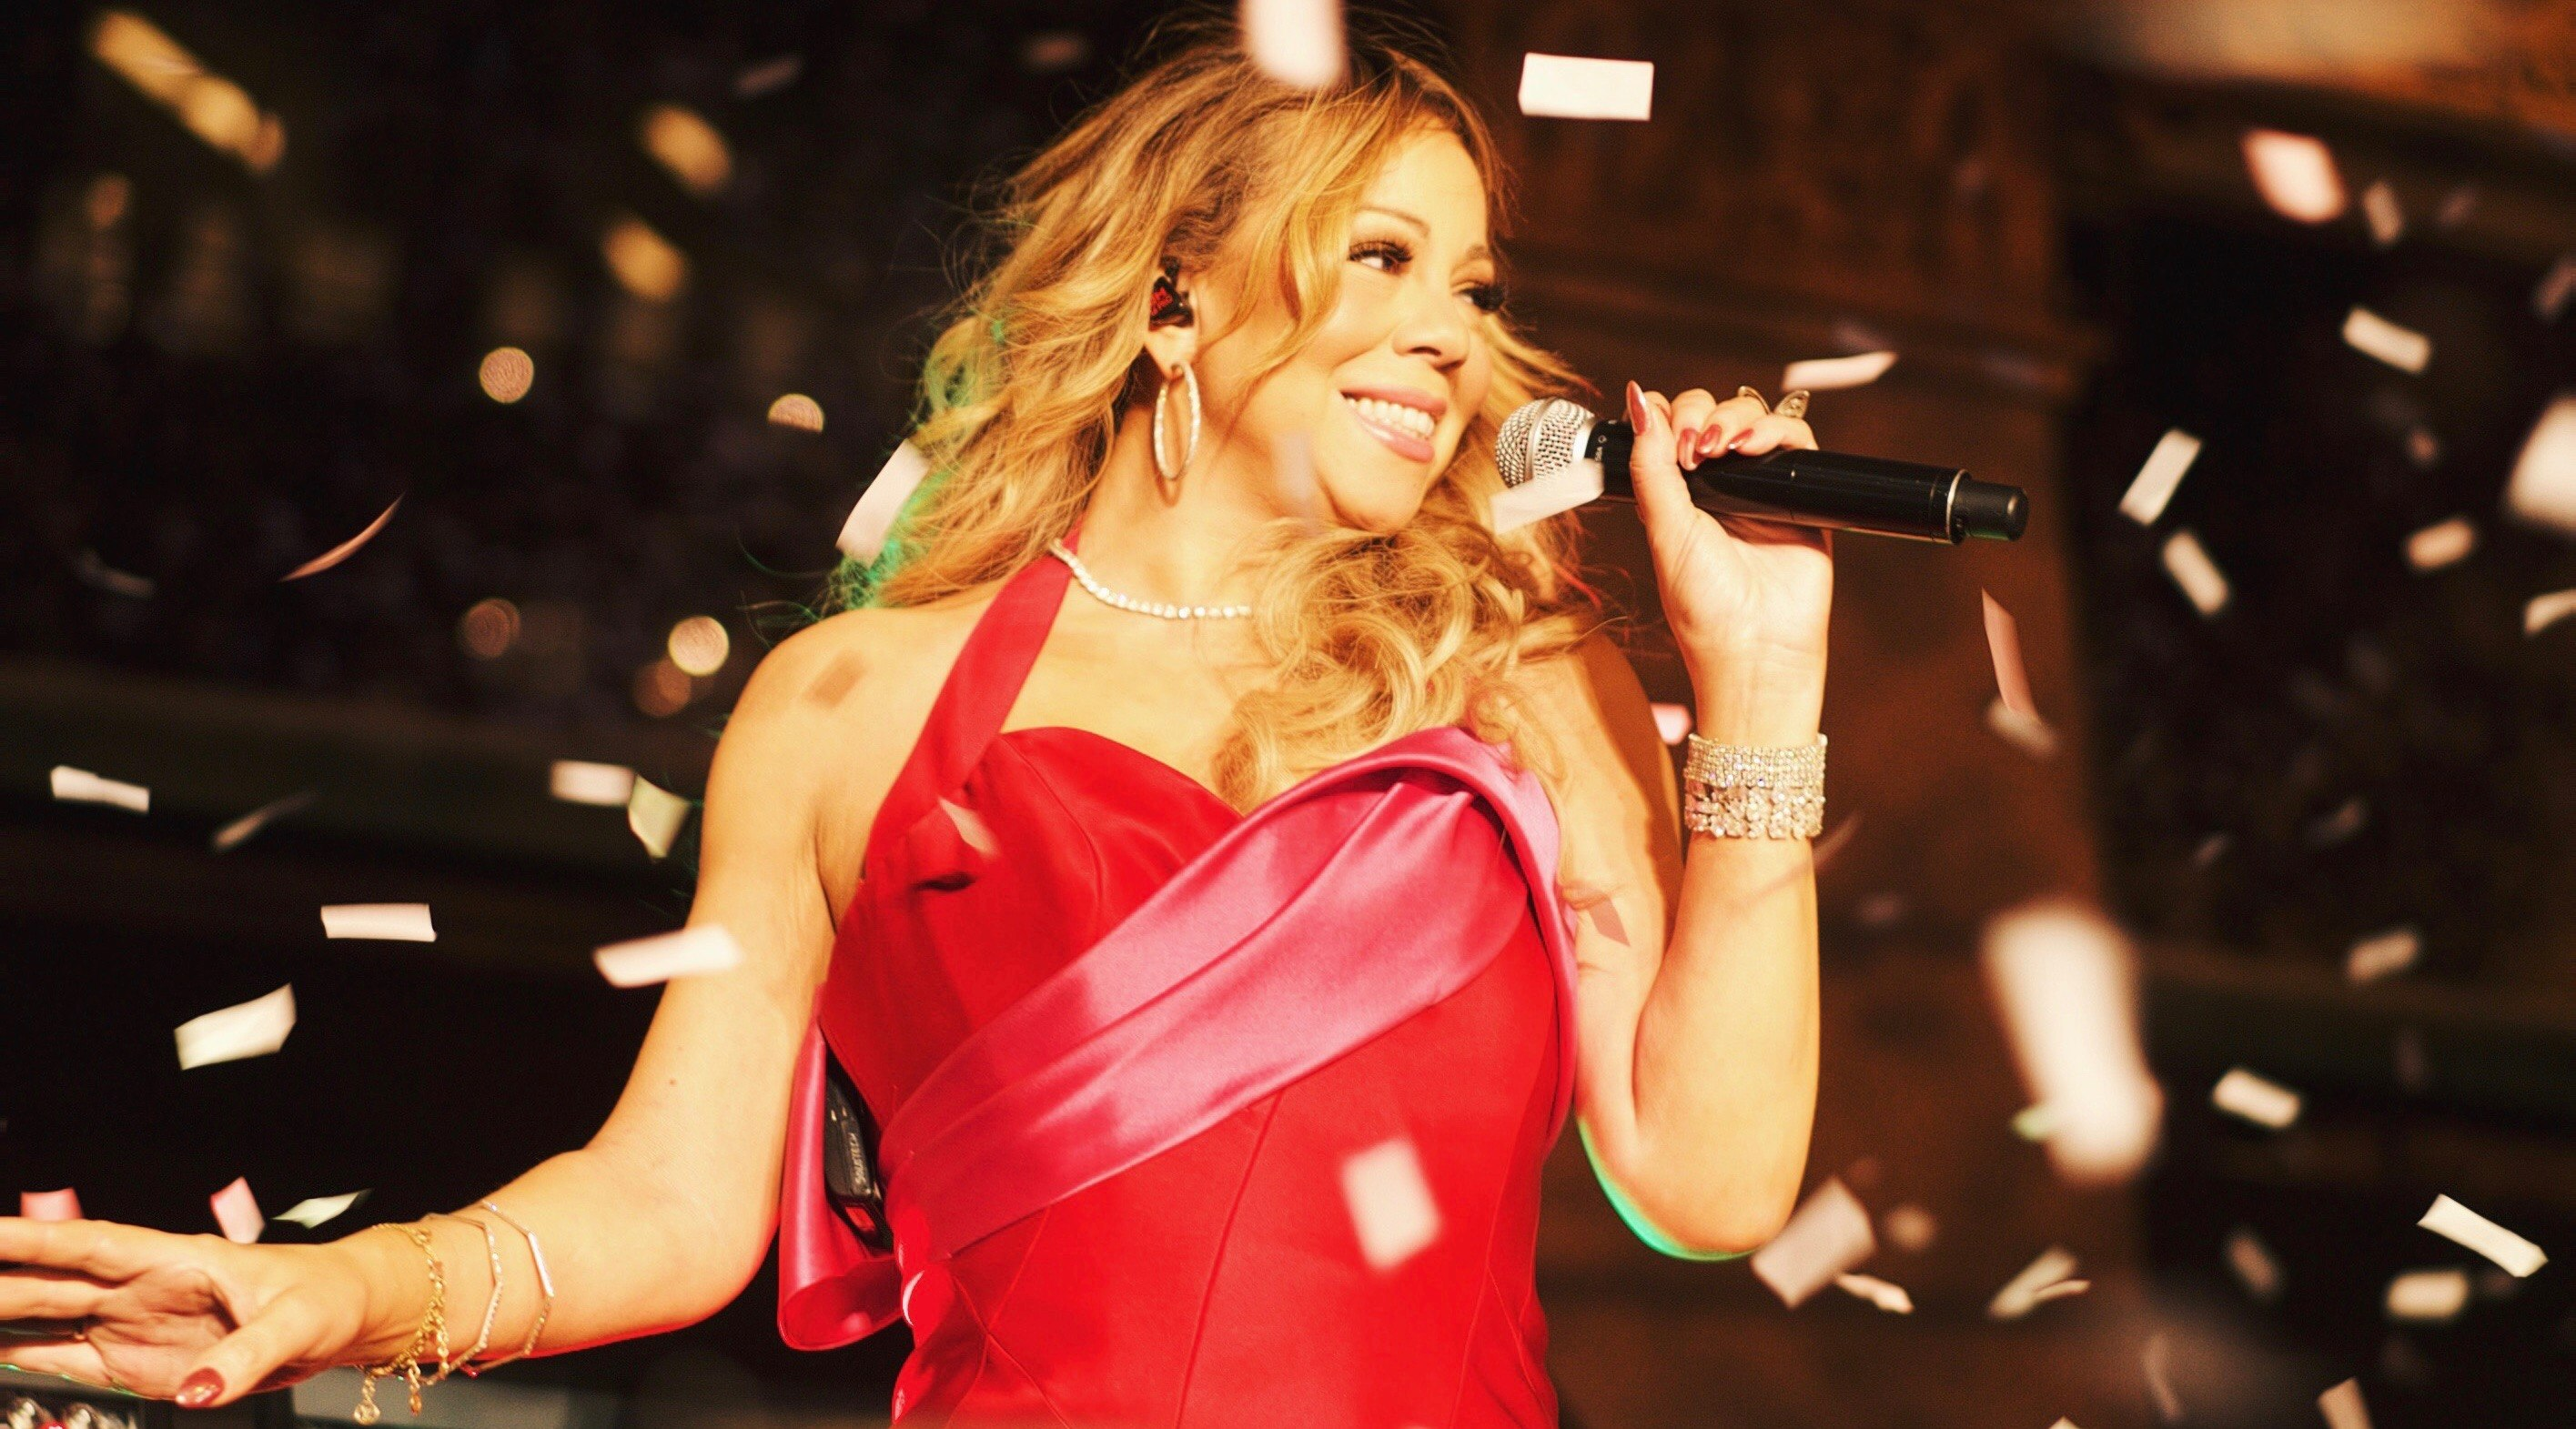 21 photos and videos that capture the insanity of last night's Mariah Carey concert in Toronto